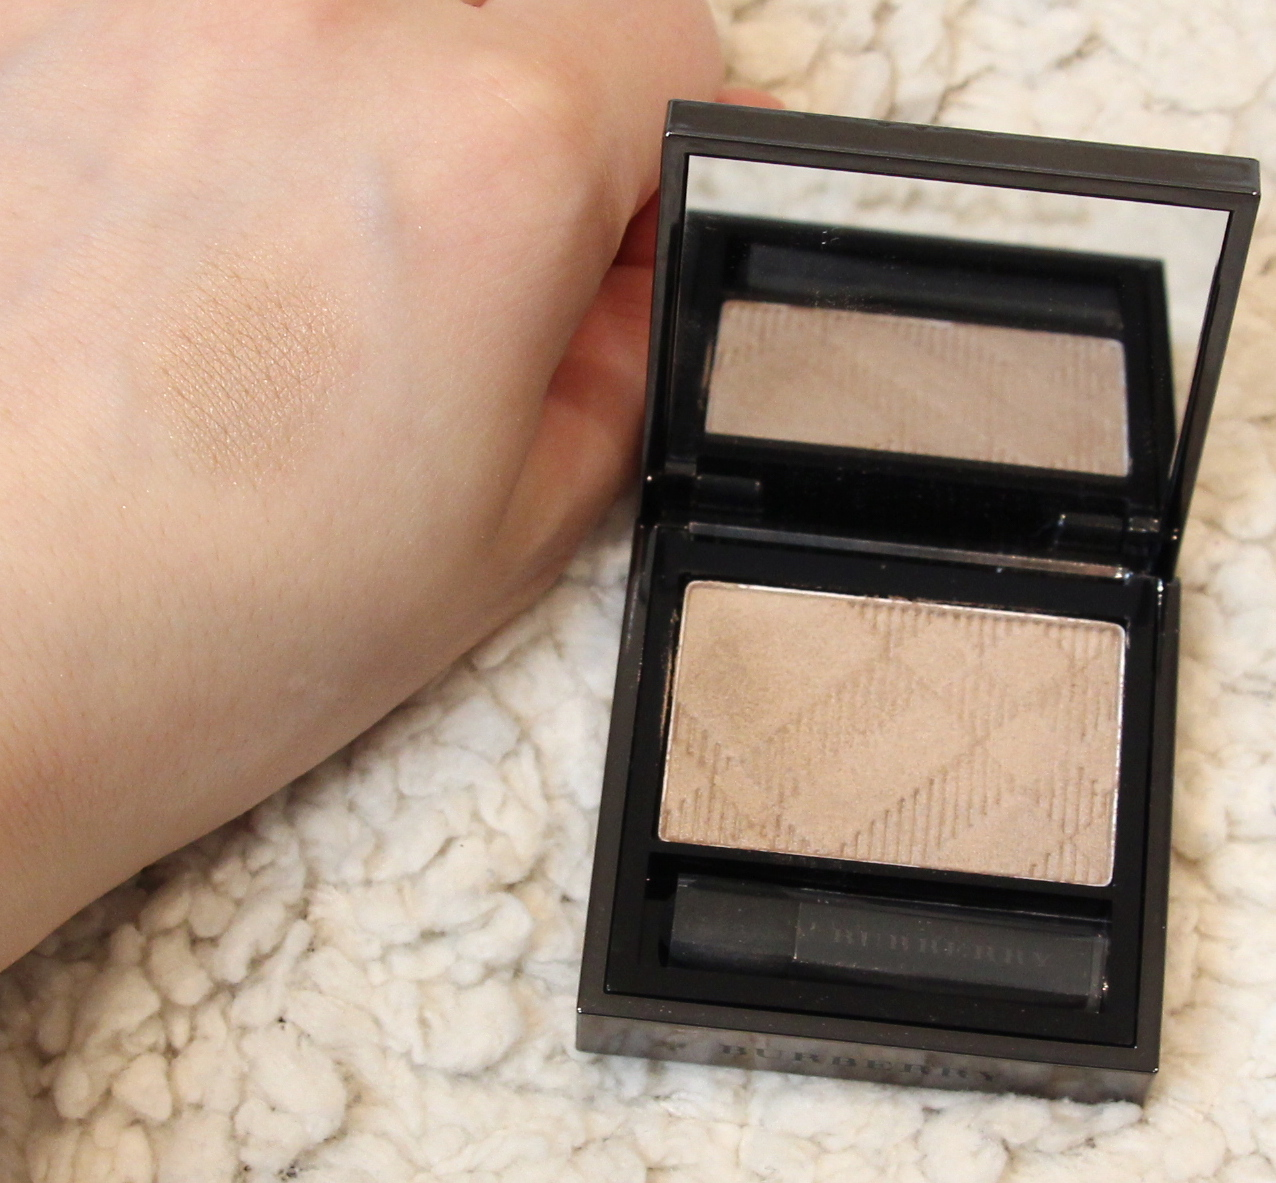 Burberry Pale Barley Eye Colour No.102 wet & dry silk shadow